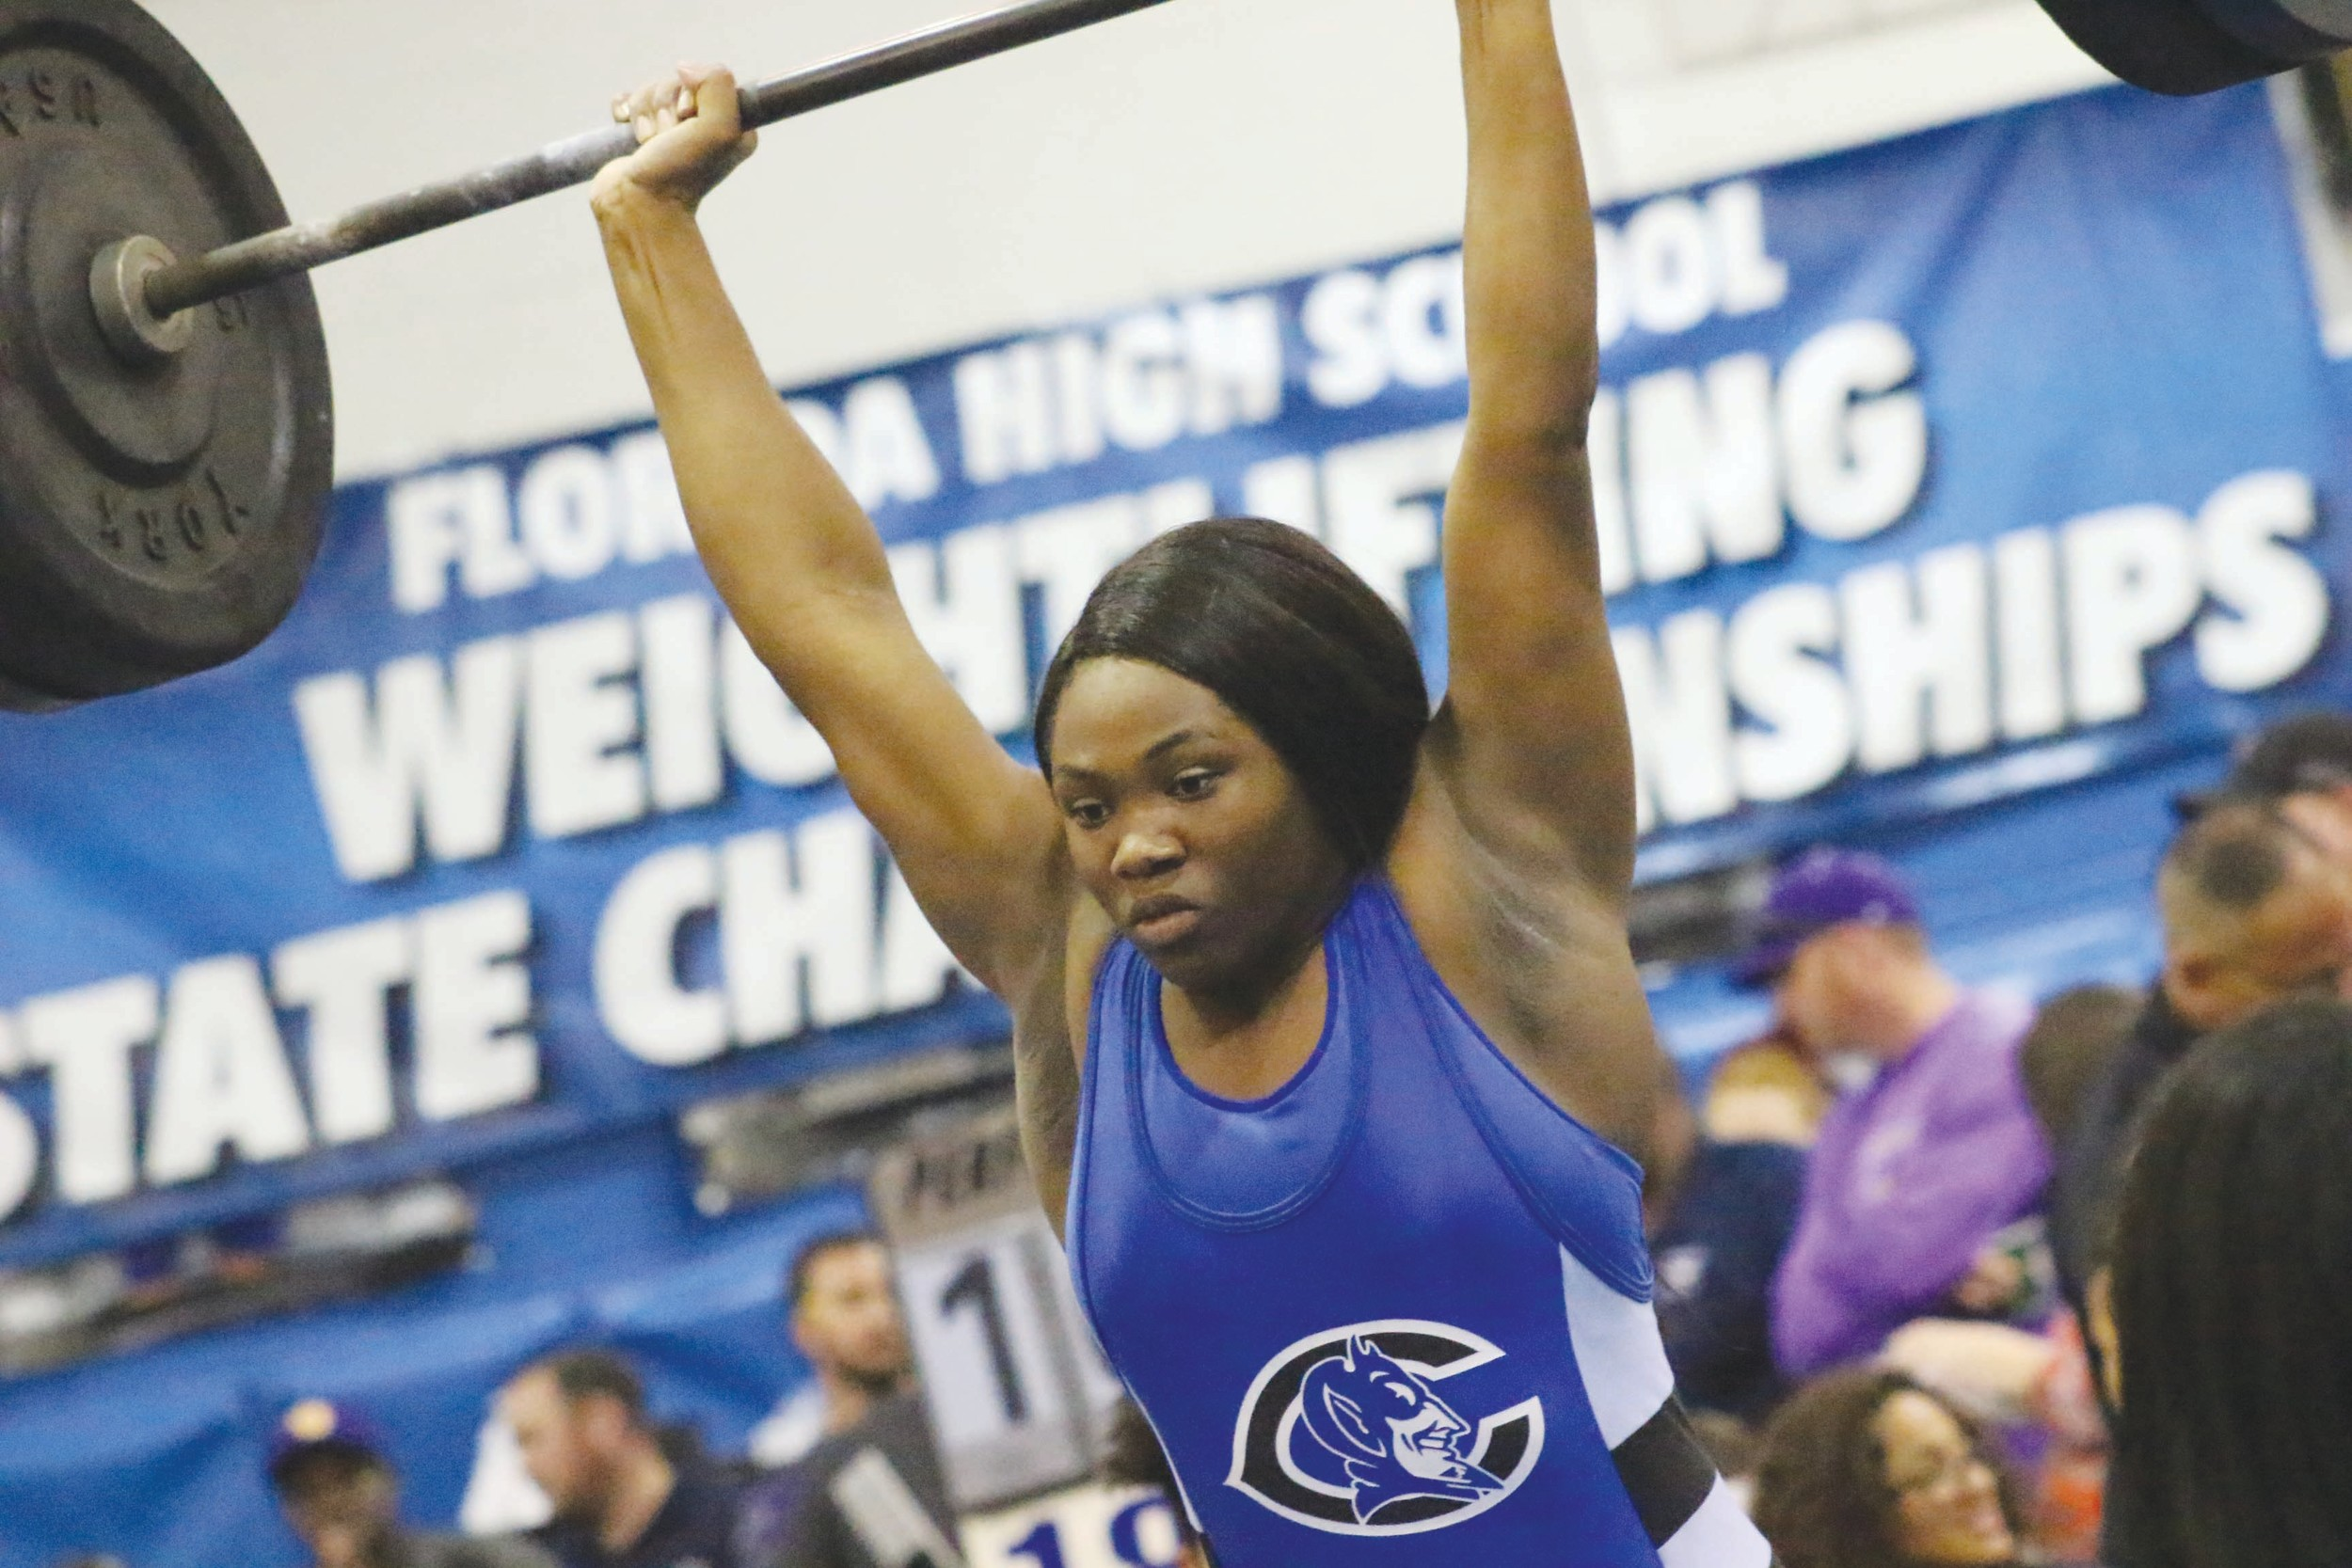 Clay High's Erykah Murray went big and went home with gold.